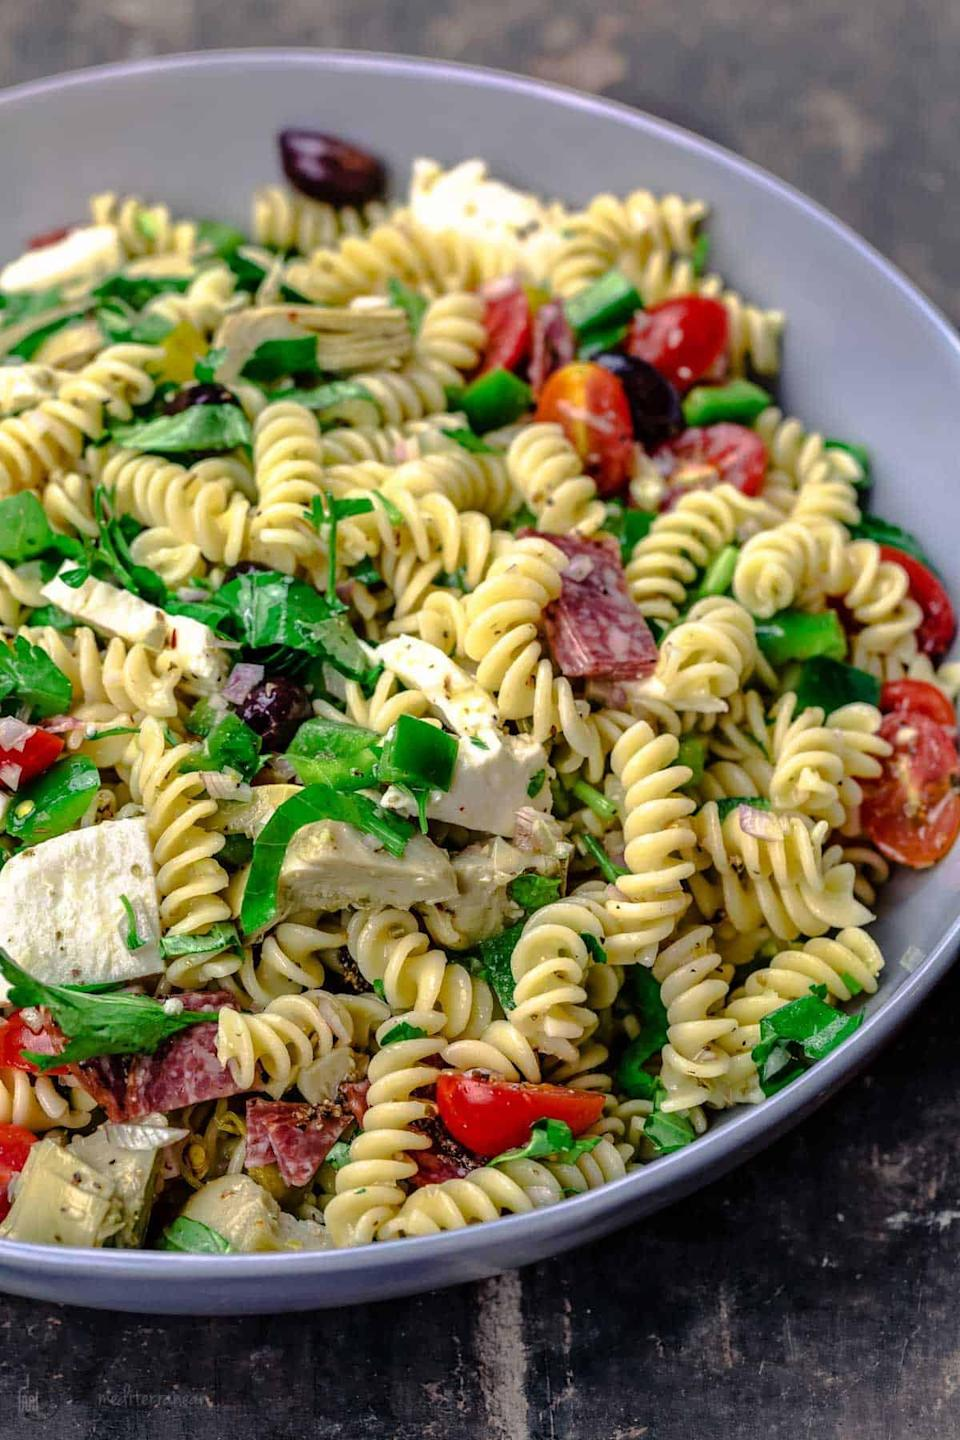 """<p>Made with a homemade sauce that ties all the flavors together, this pasta salad will be your new favorite go-to. Marinate it in the sauce long enough so each bite is packed with flavor. Top it off with your favorite veggies, and you'll be good to go.</p> <p><strong>Get the recipe:</strong> <a href=""""https://www.themediterraneandish.com/italian-pasta-salad/"""" class=""""link rapid-noclick-resp"""" rel=""""nofollow noopener"""" target=""""_blank"""" data-ylk=""""slk:loaded Italian pasta salad"""">loaded Italian pasta salad</a></p>"""